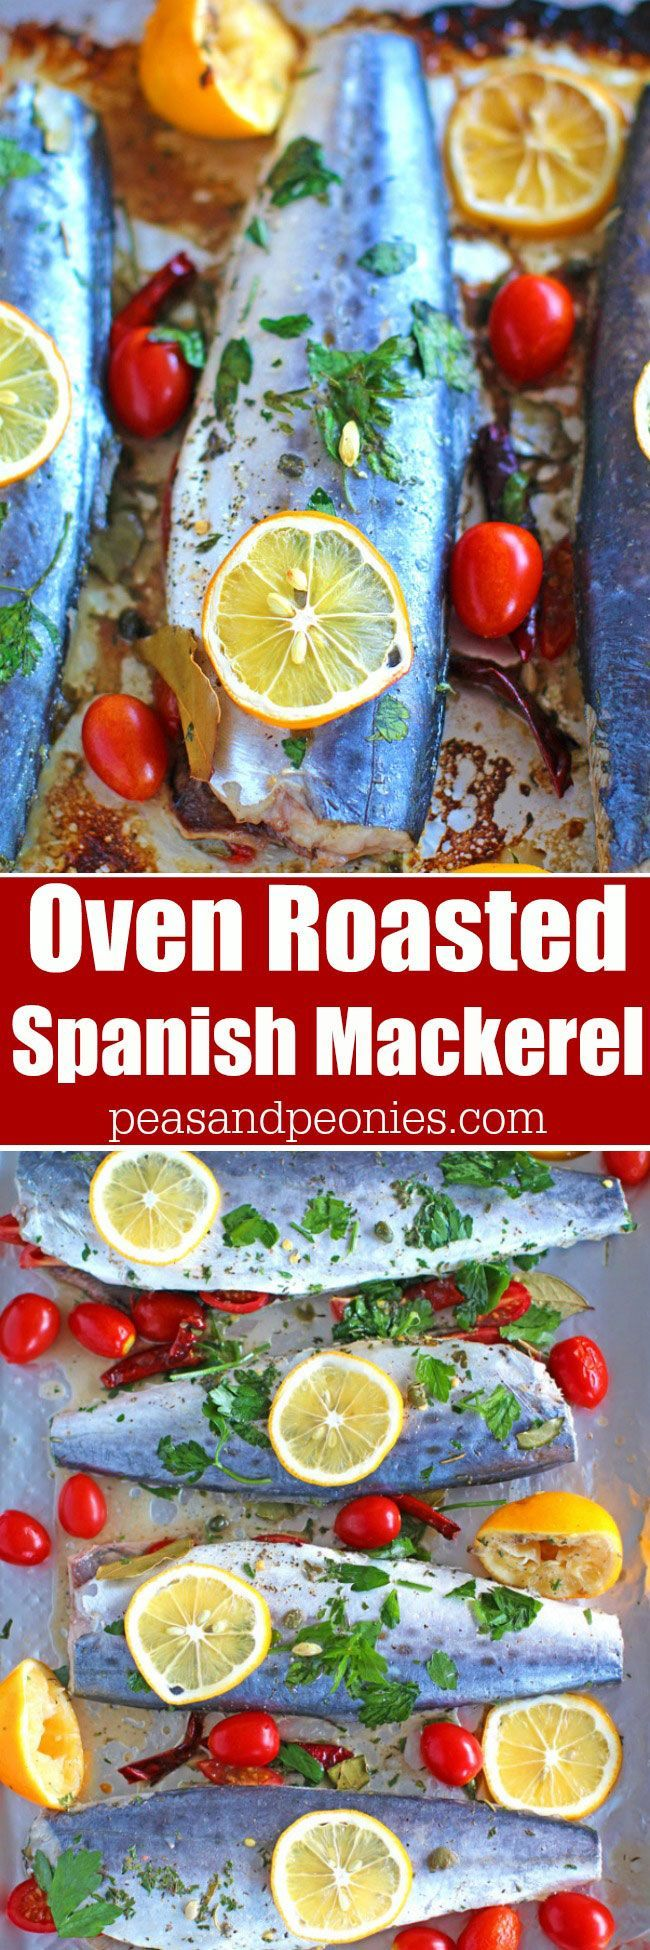 Healthy Oven Roasted Spanish Mackerel marinated with grape tomatoes, capers, dried chili peppers and lemon is one very tasty and easy meal to make.